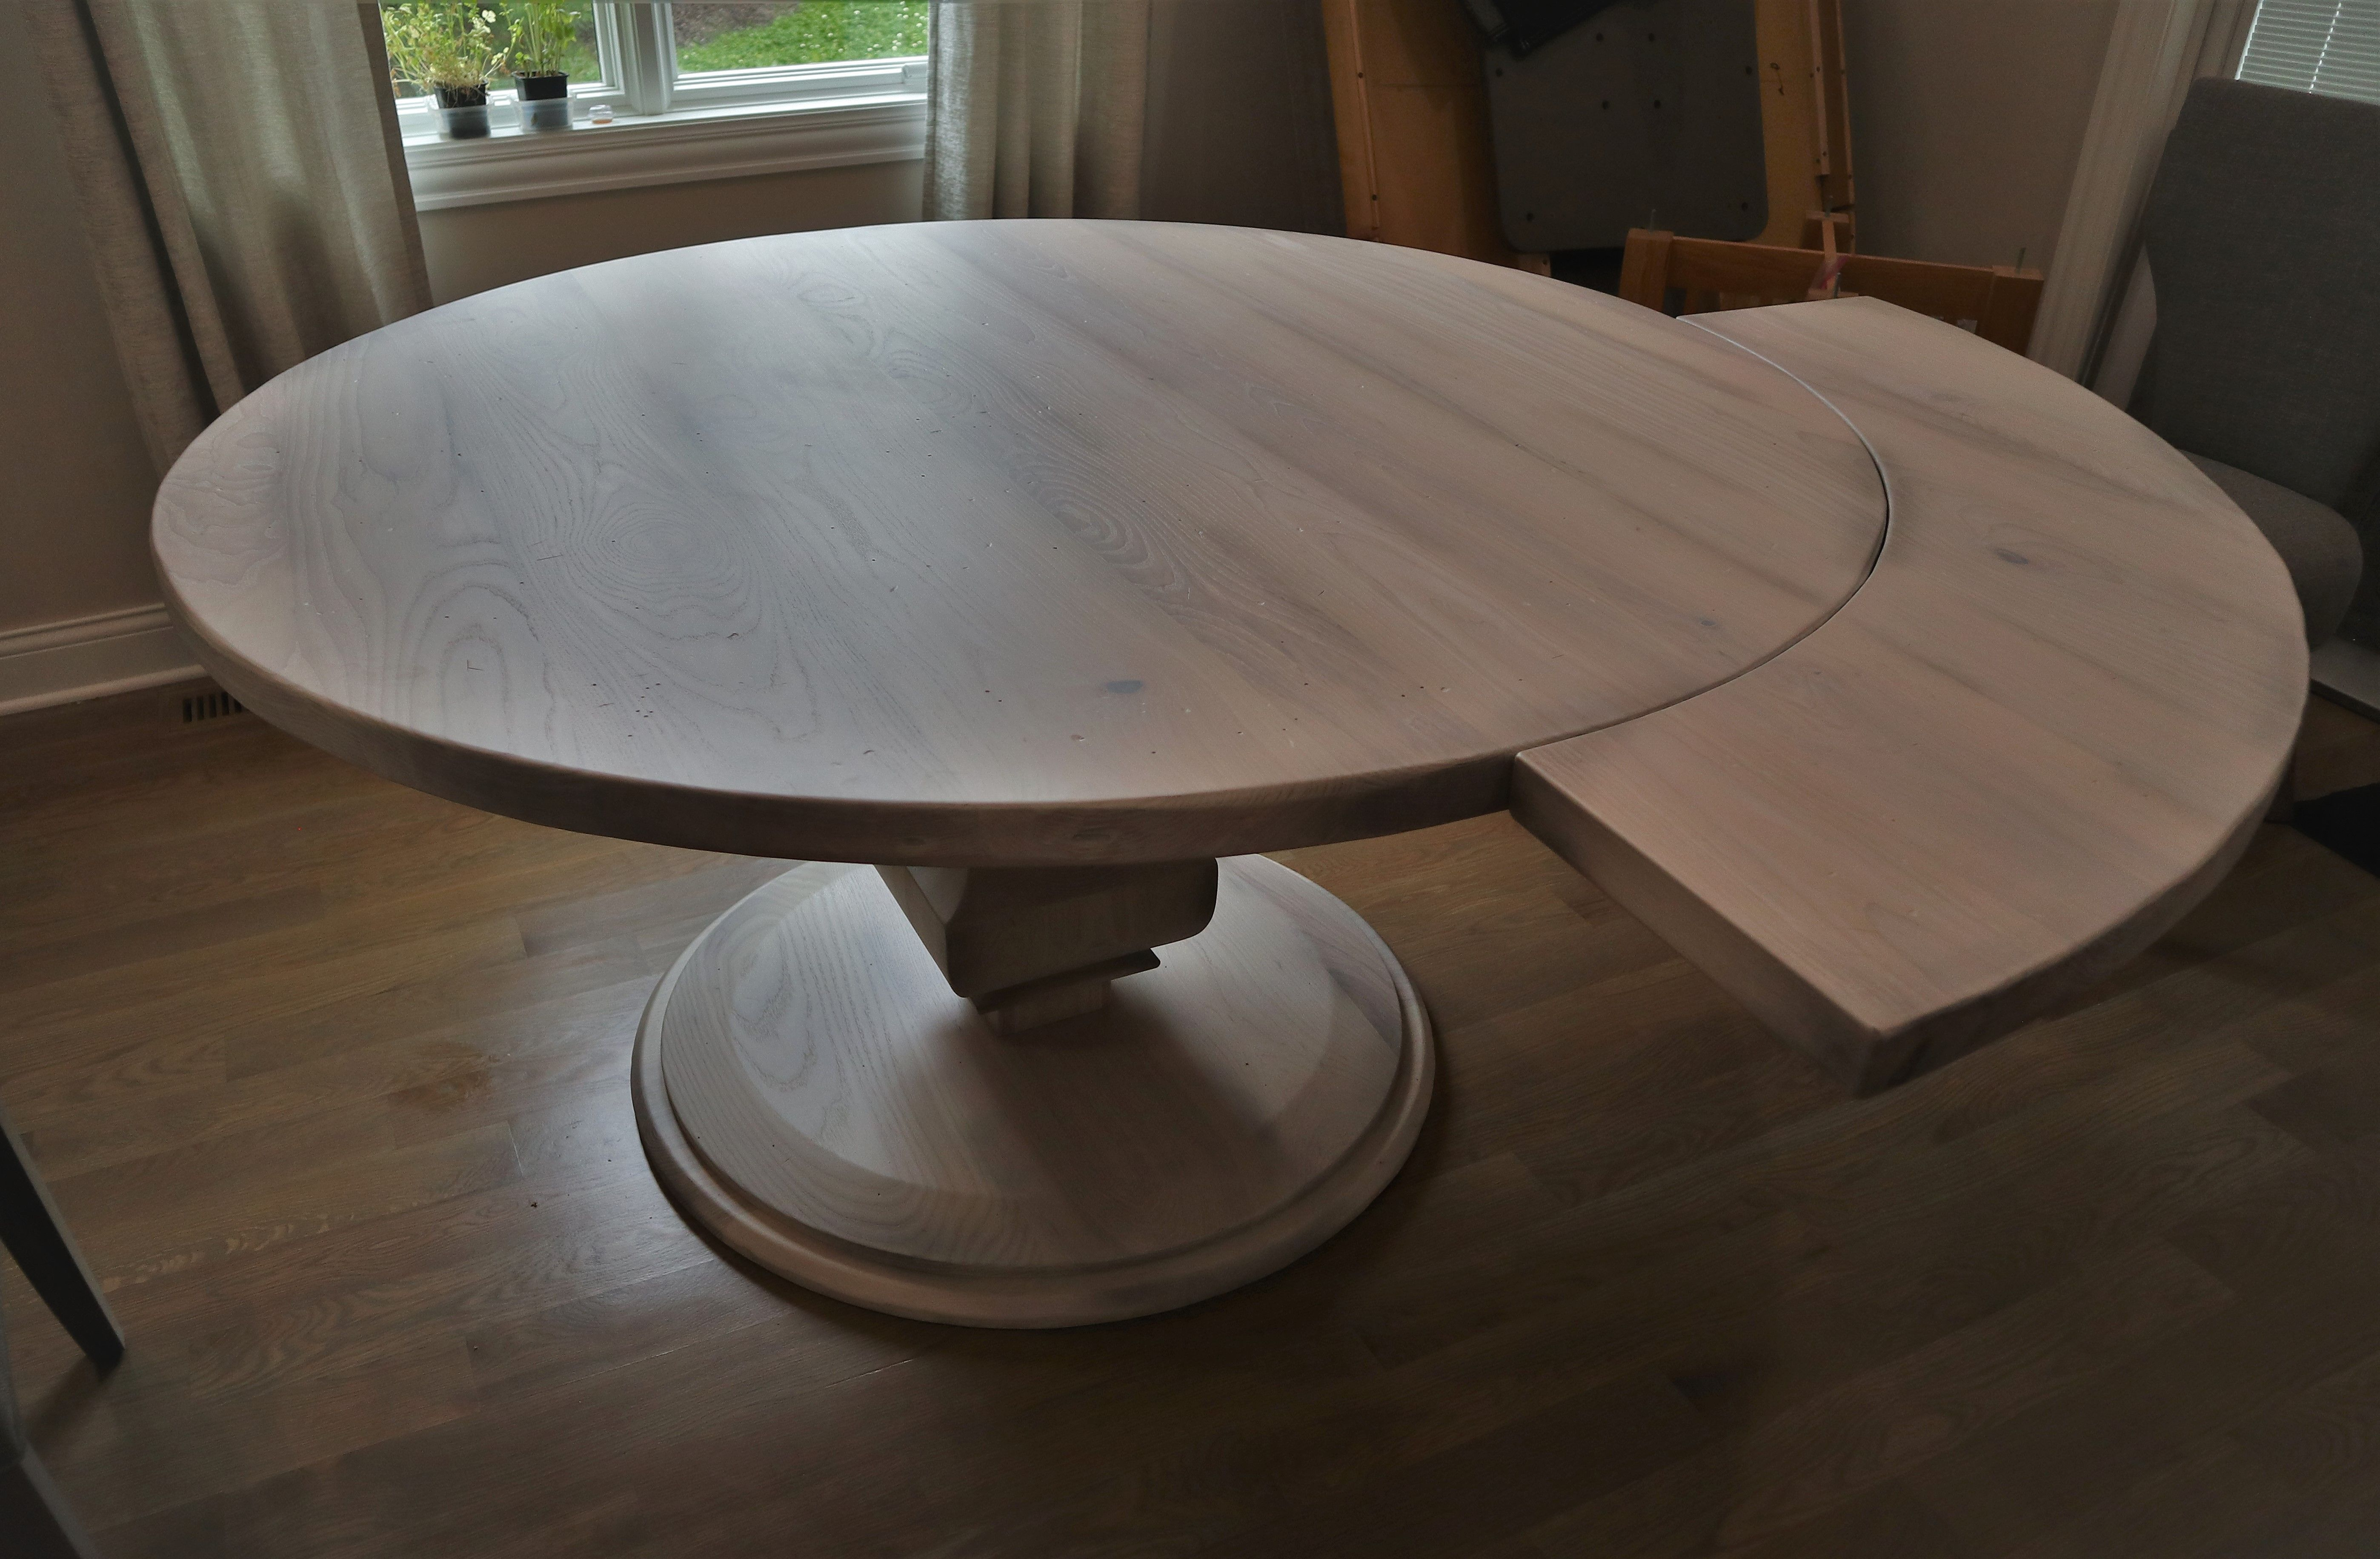 One Way To Keep A Round Table Round While Adding Additional